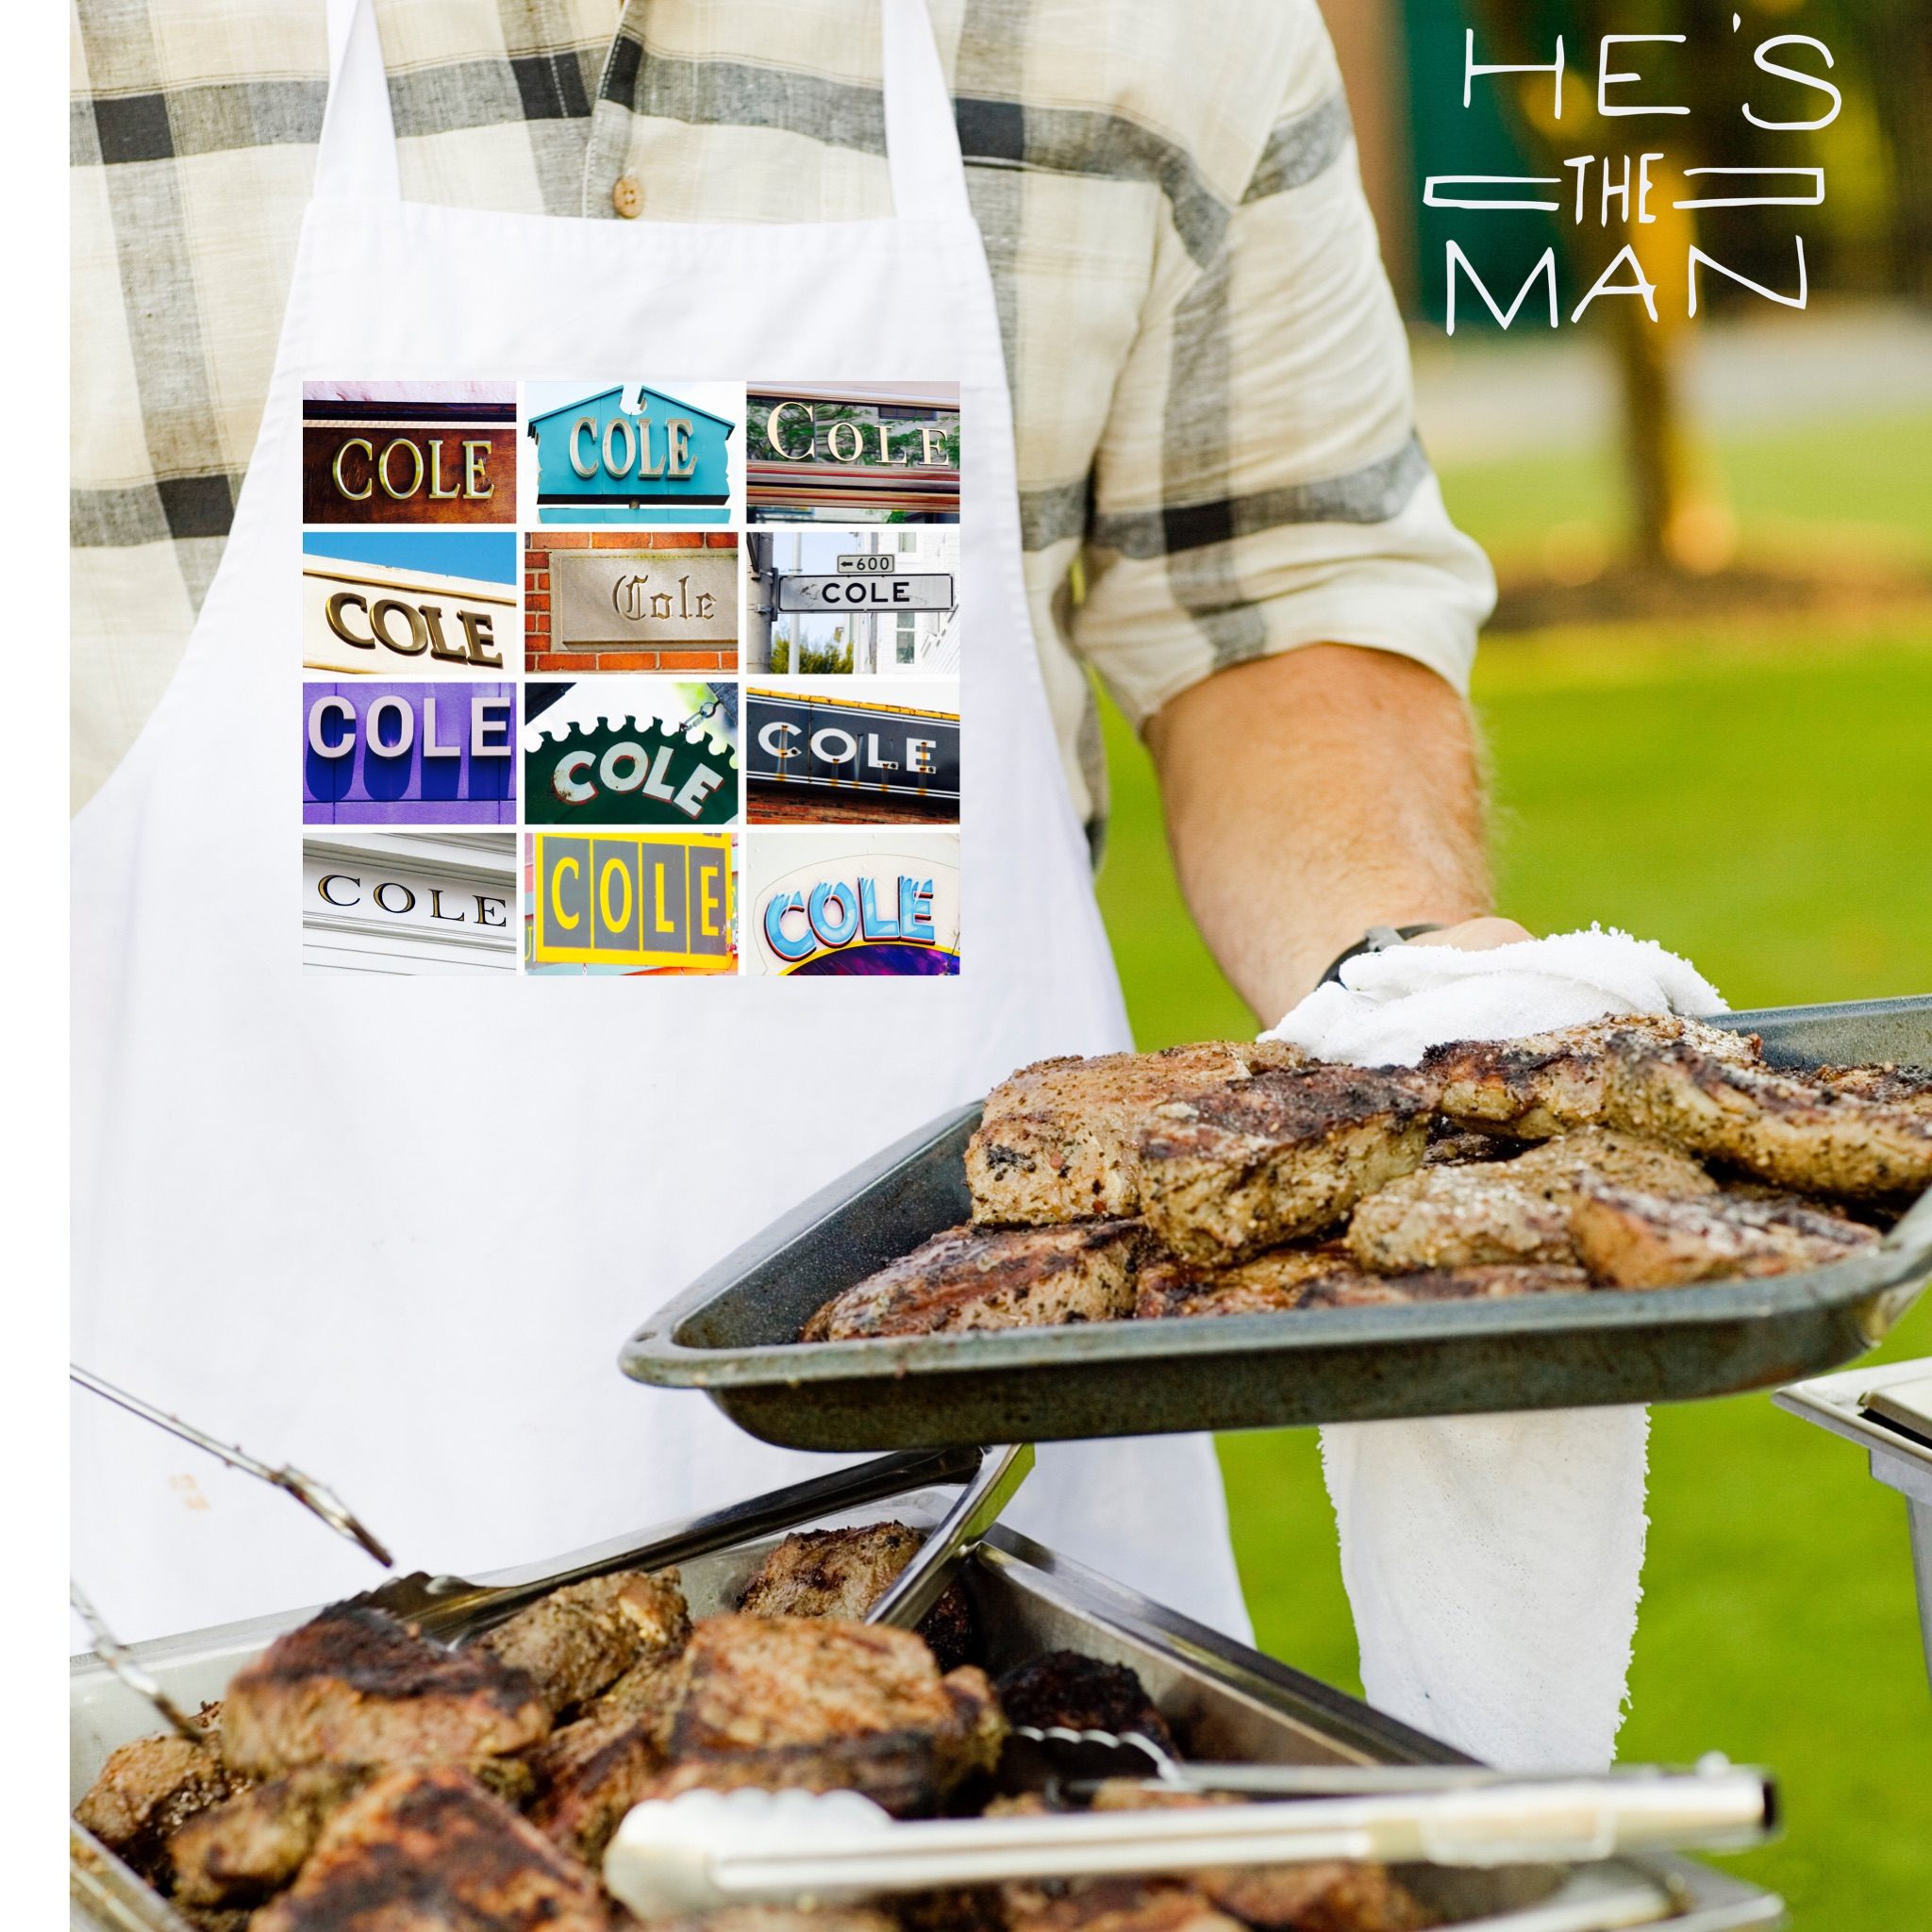 https://www.etsy.com/listing/529789639/custom-apron-featuring-the-name-cole-in?ref=shop_home_active_1